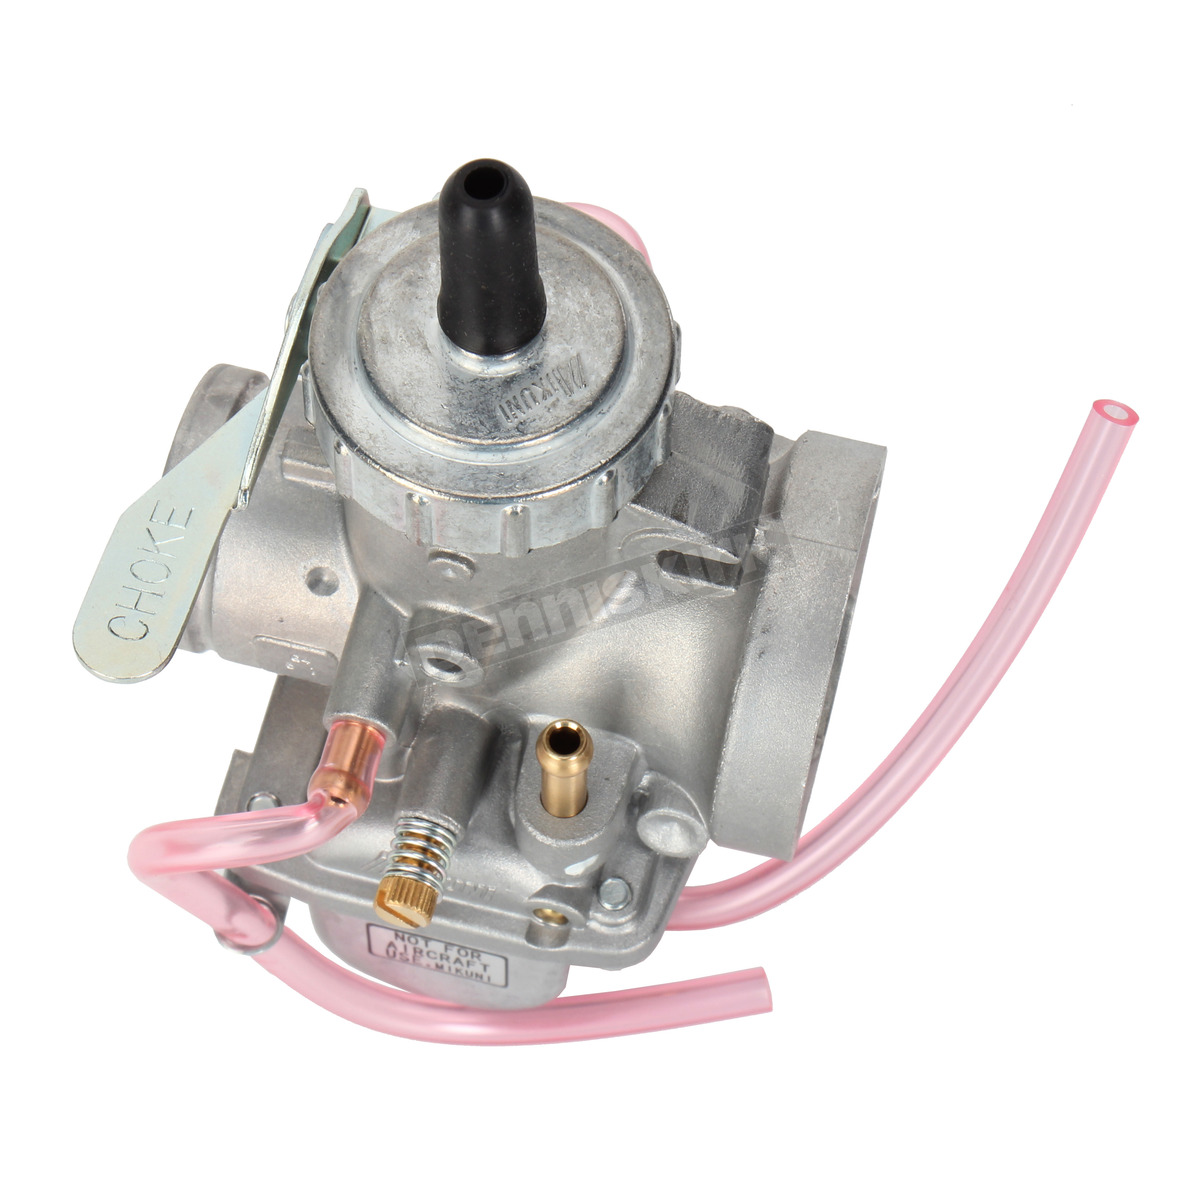 30mm VM Series Universal Round Slide Carburetor - VM30-83